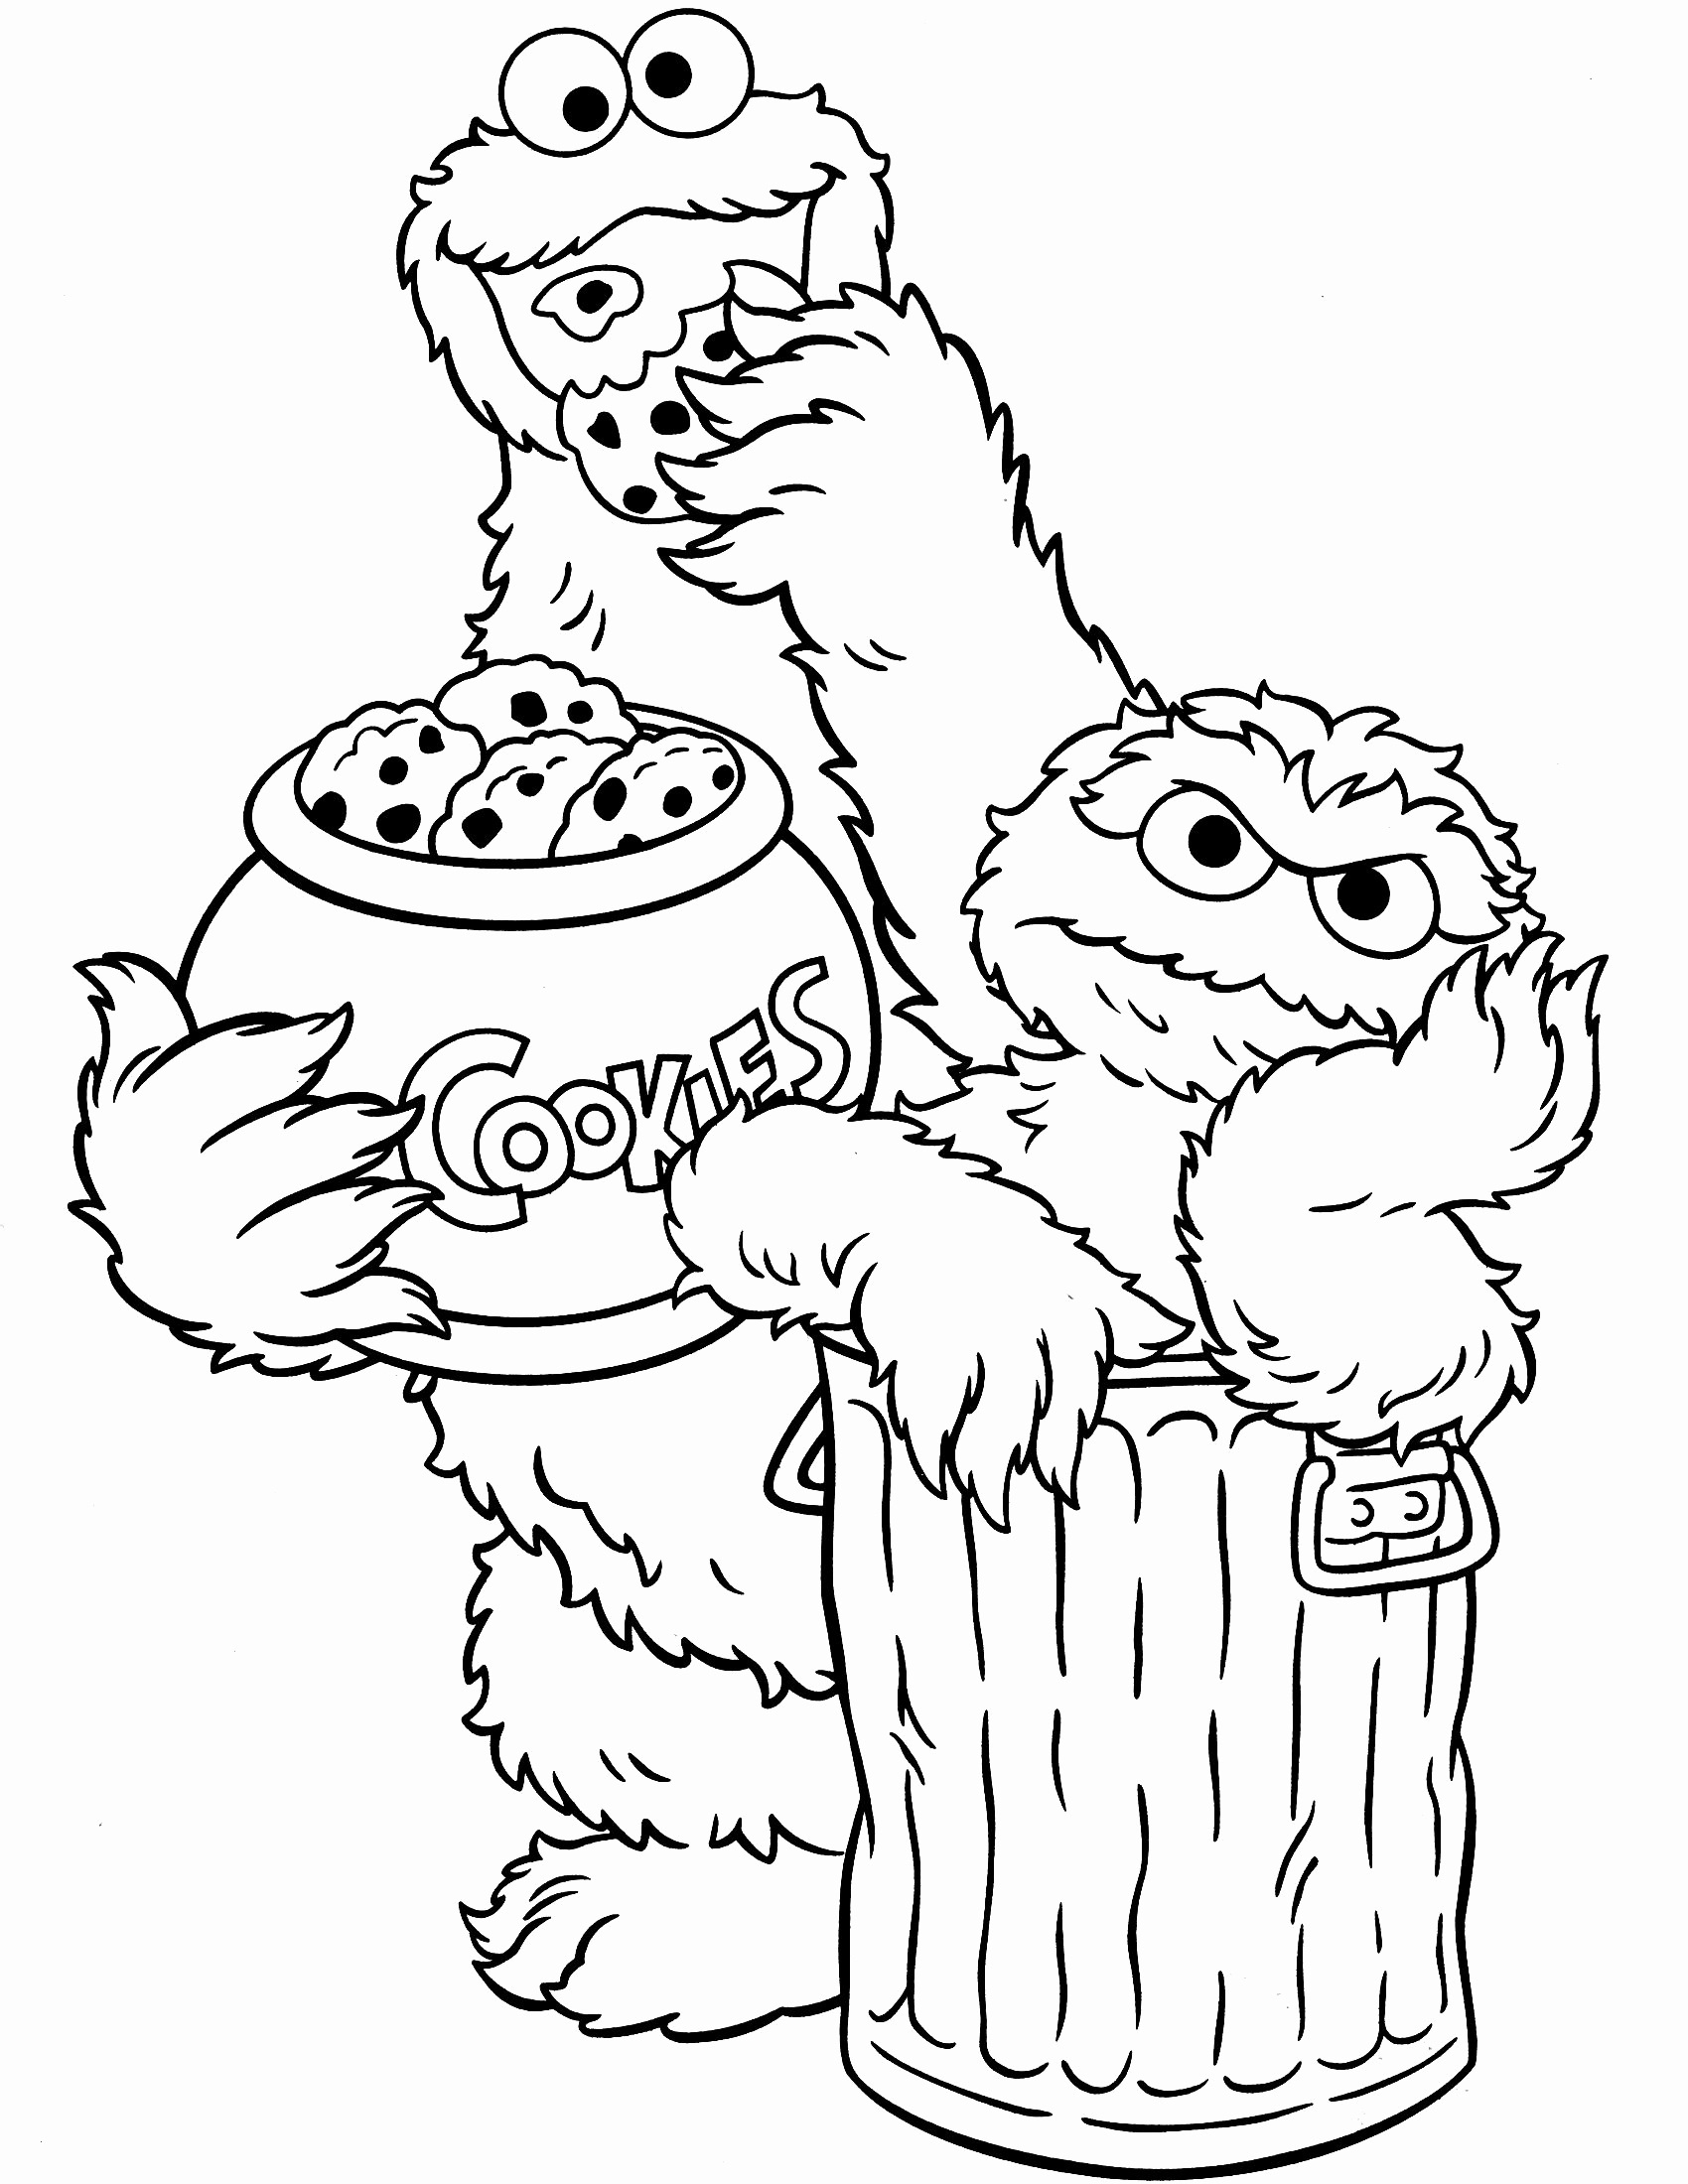 Top 15 Free Printable Sesame Street Coloring Pages Online For 8 - Free Printable Sesame Street Coloring Pages